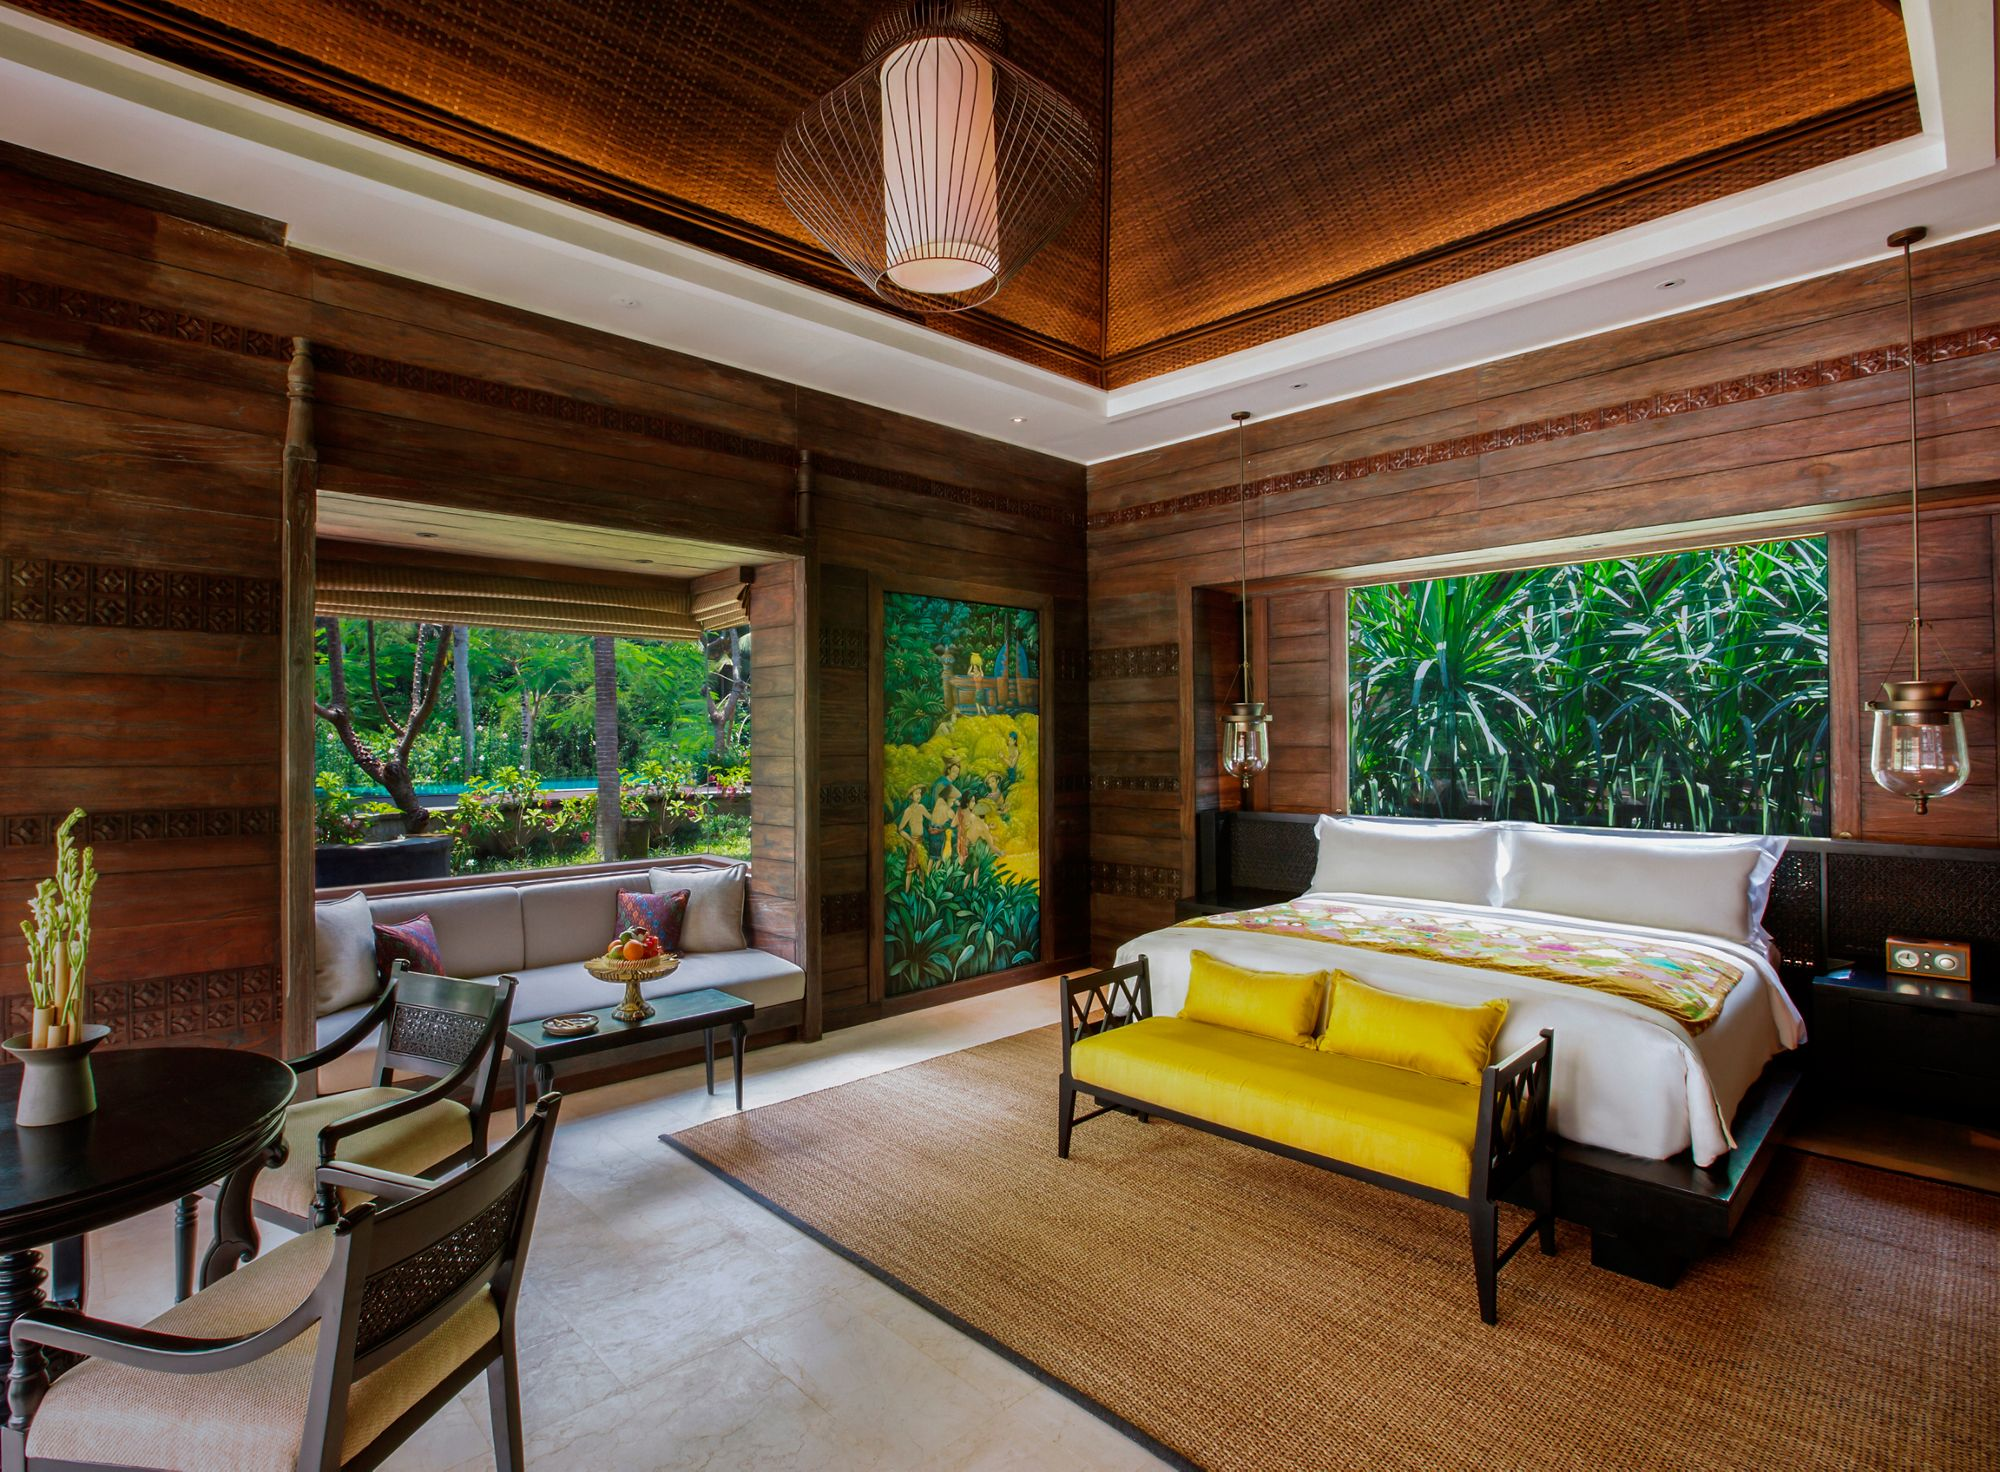 Villa bedroom with a king bed, window seat and a small table with chairs as well as wood-paneled walls and forest views